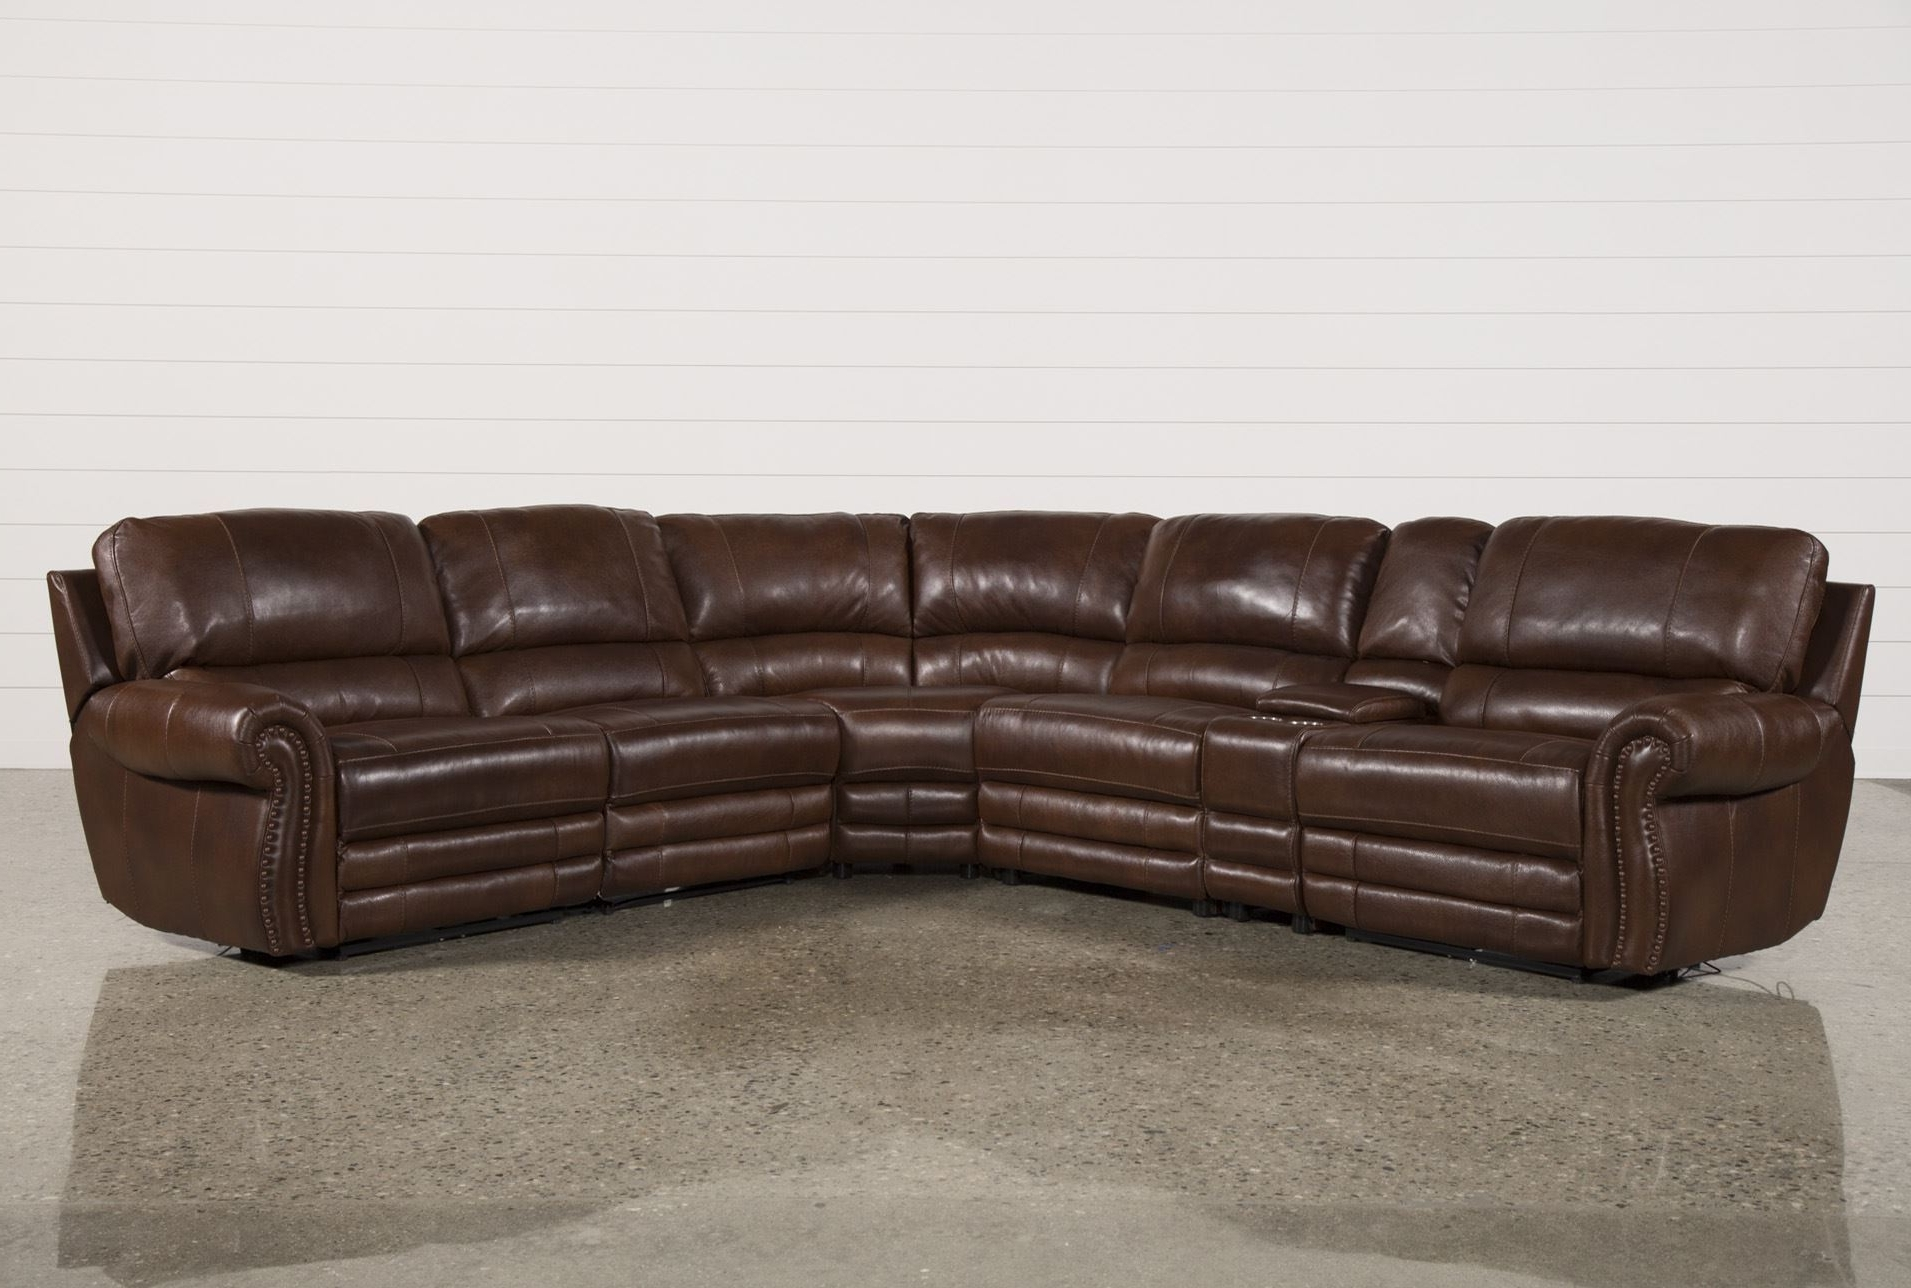 Favorite 6 Piece Leather Sectional Sofa – Radiovannes Regarding 6 Piece Leather Sectional Sofas (View 14 of 15)